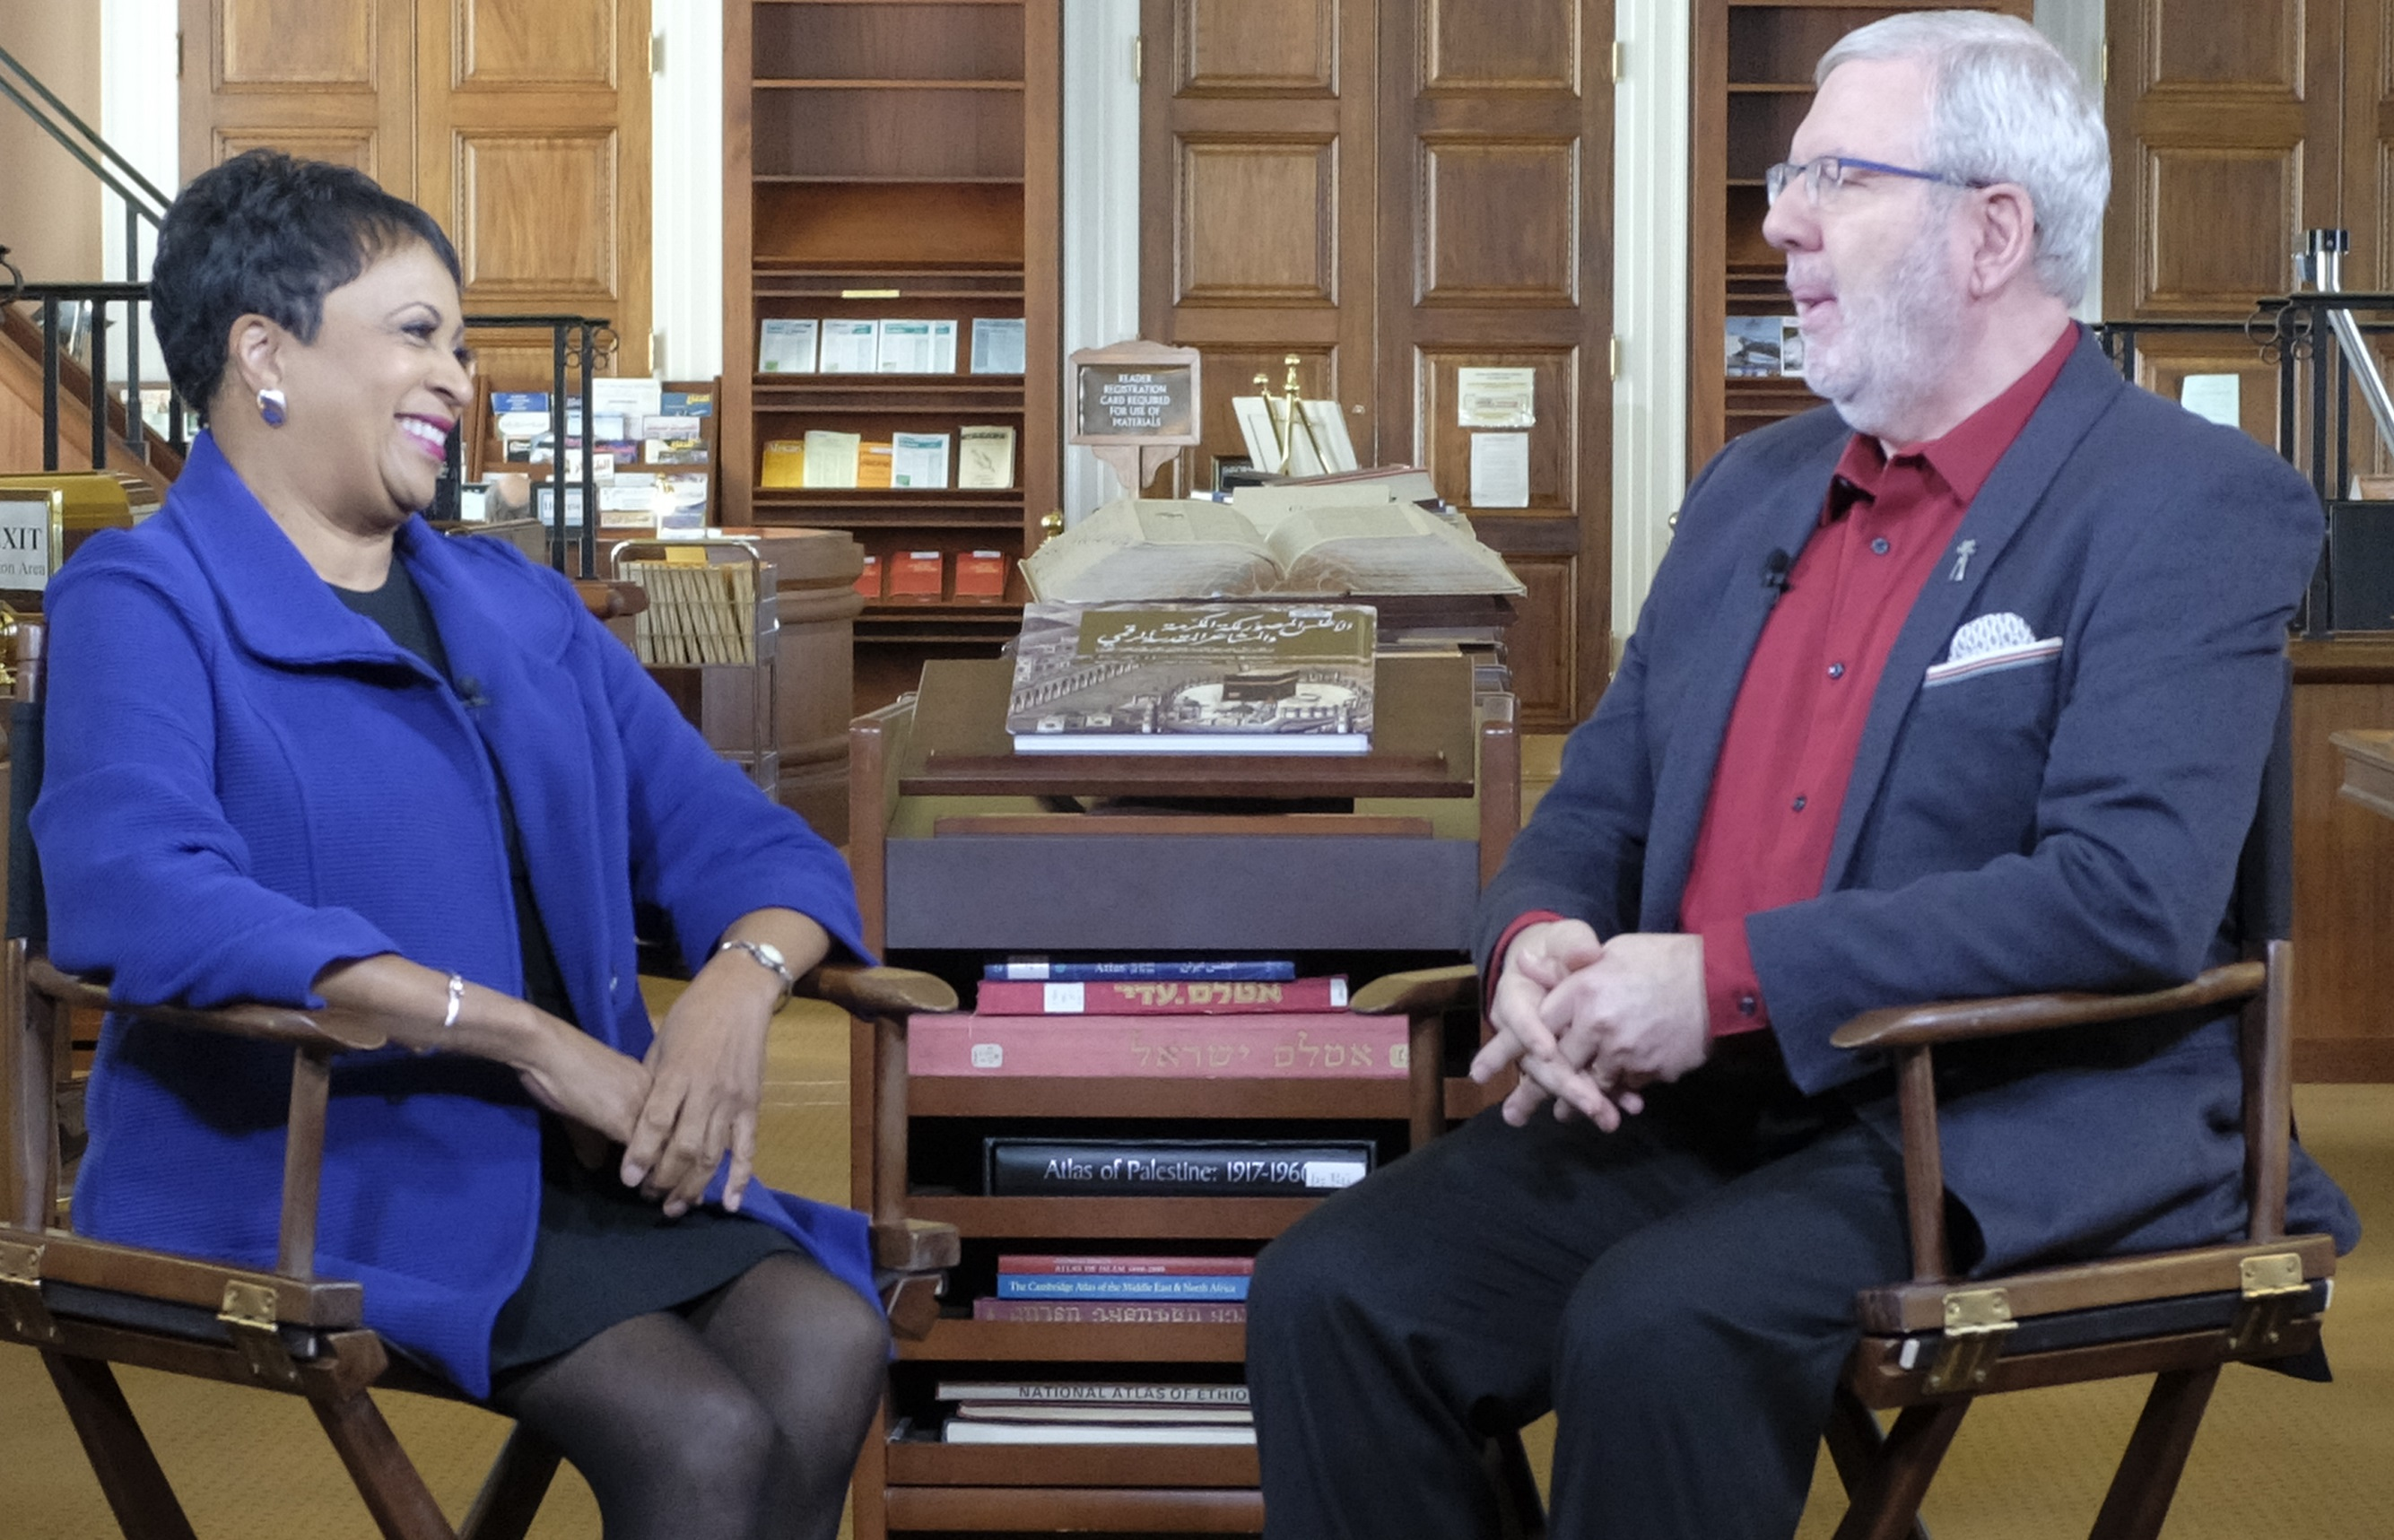 TCM's Leonard Maltin interviews Librarian of Congress Carla Hayden about the National Film Registry selections for 2017. Photo by Shawn Miller.